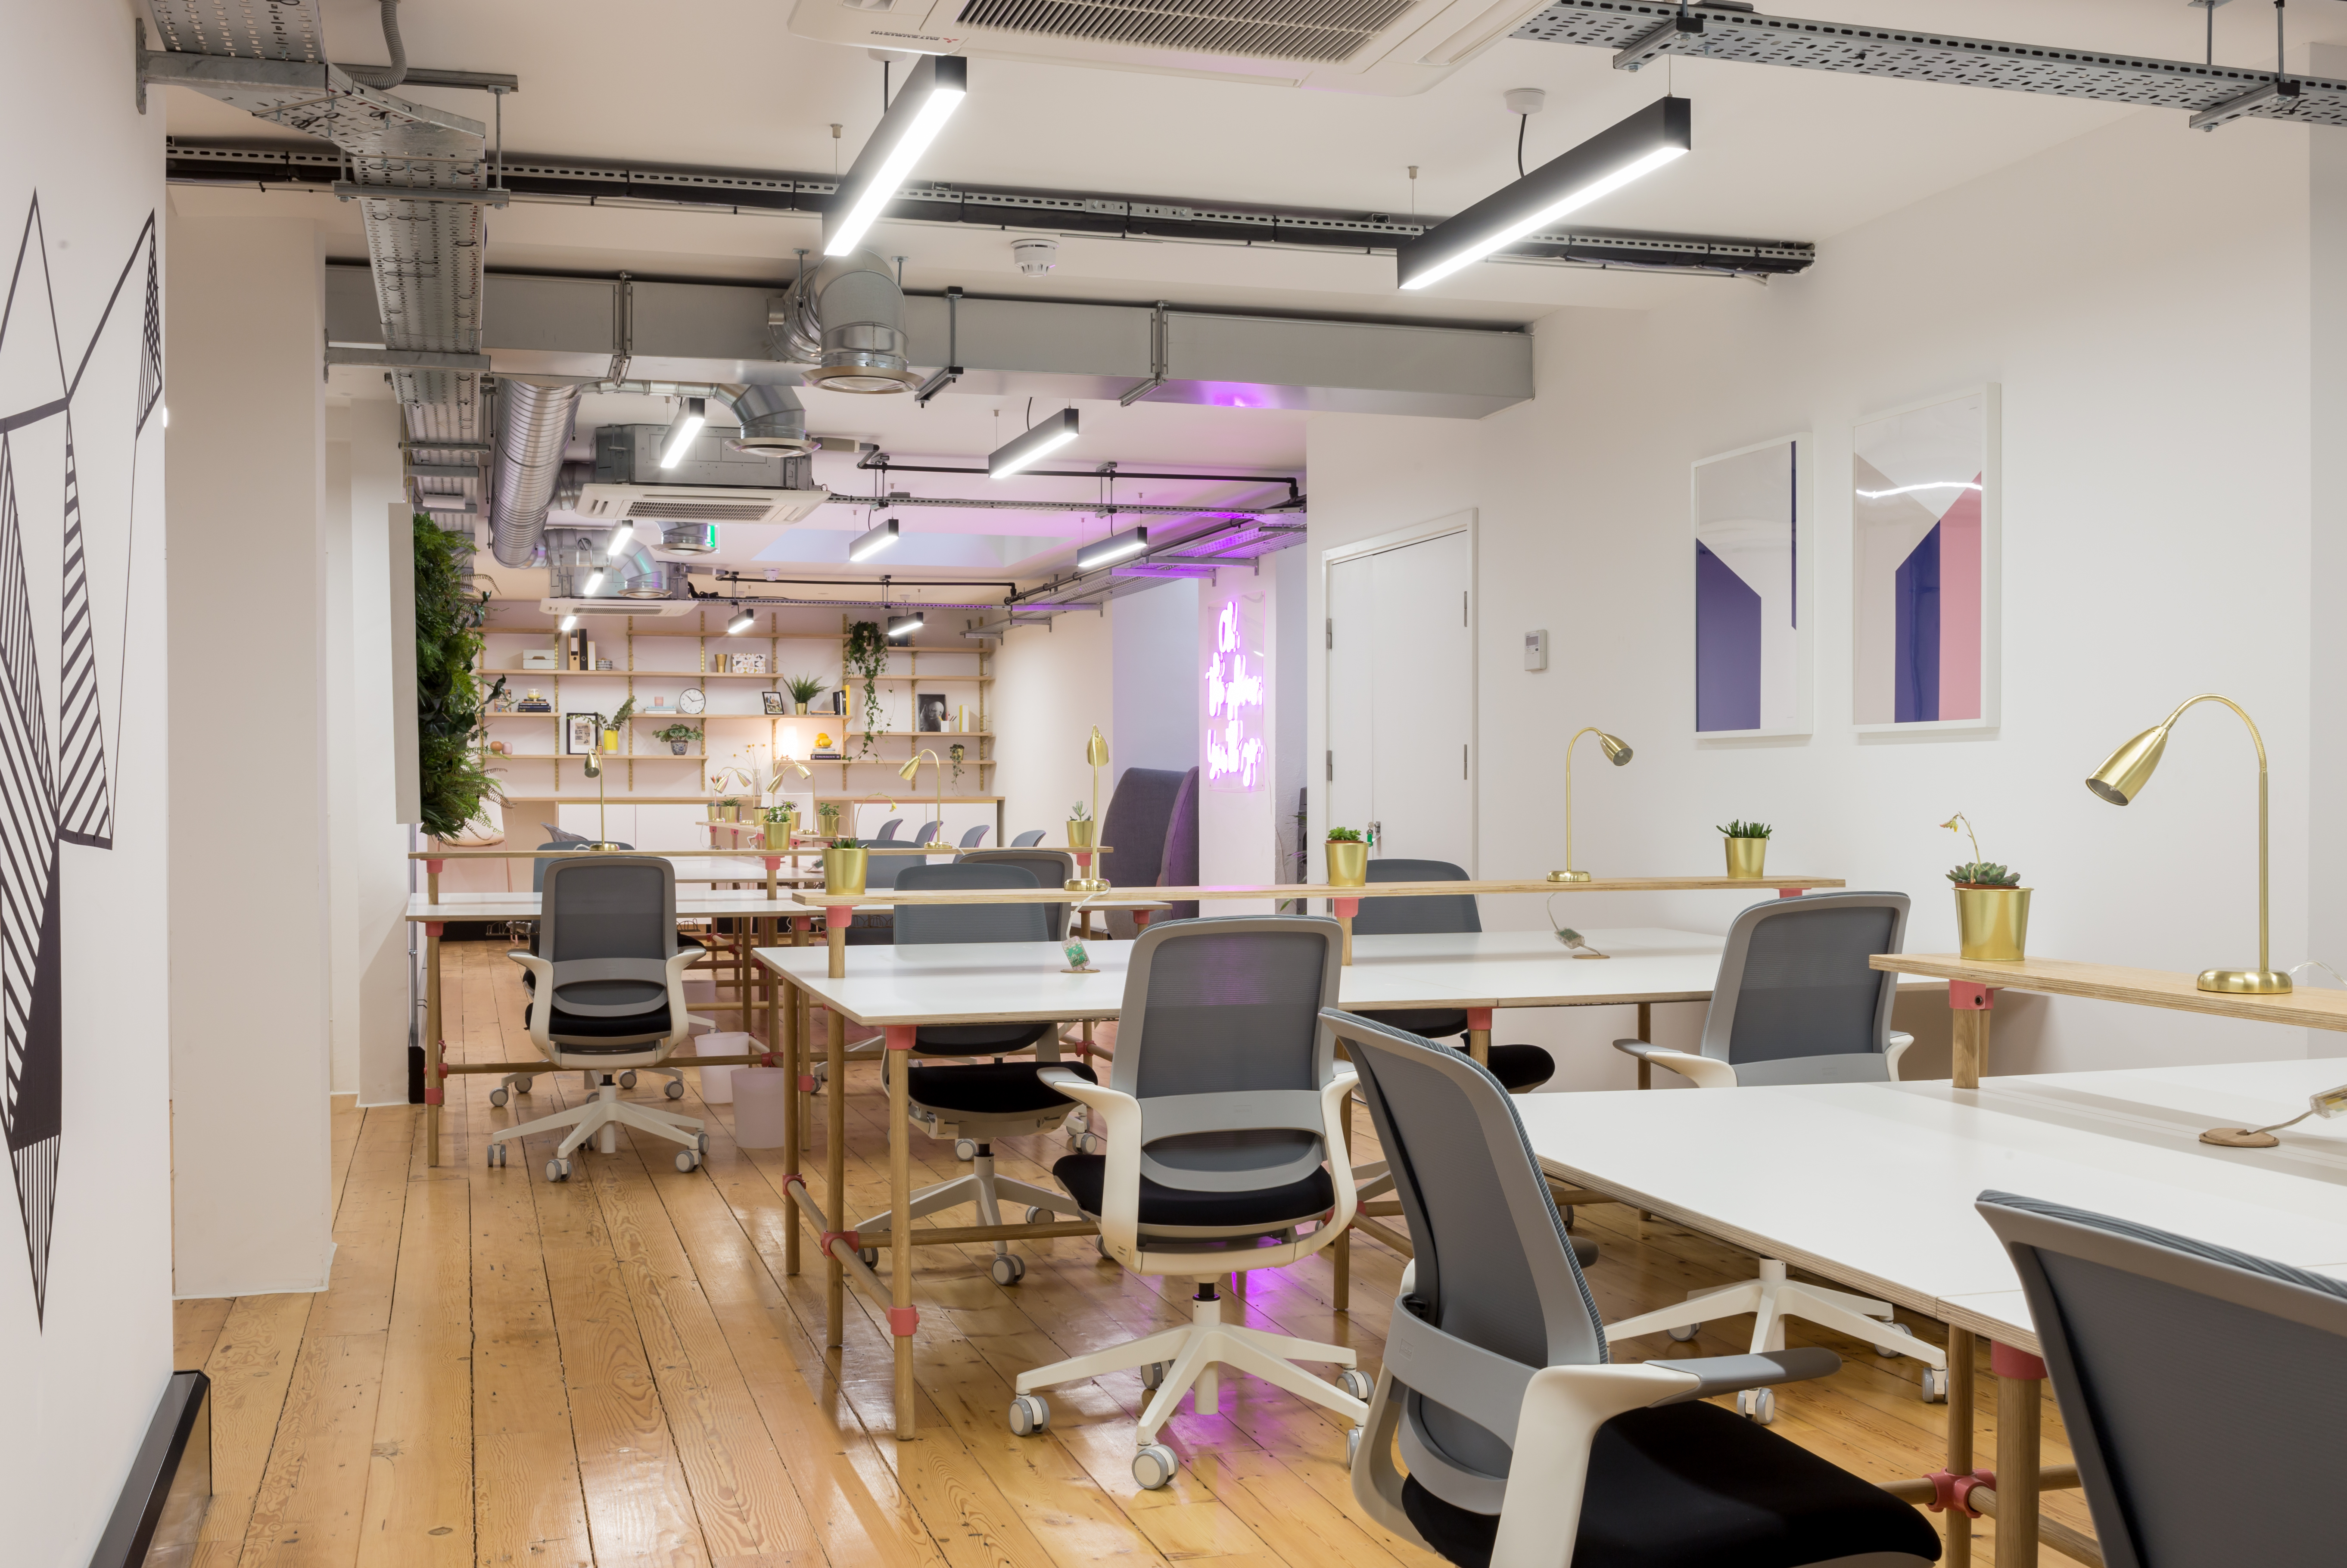 coworking space with modern interior